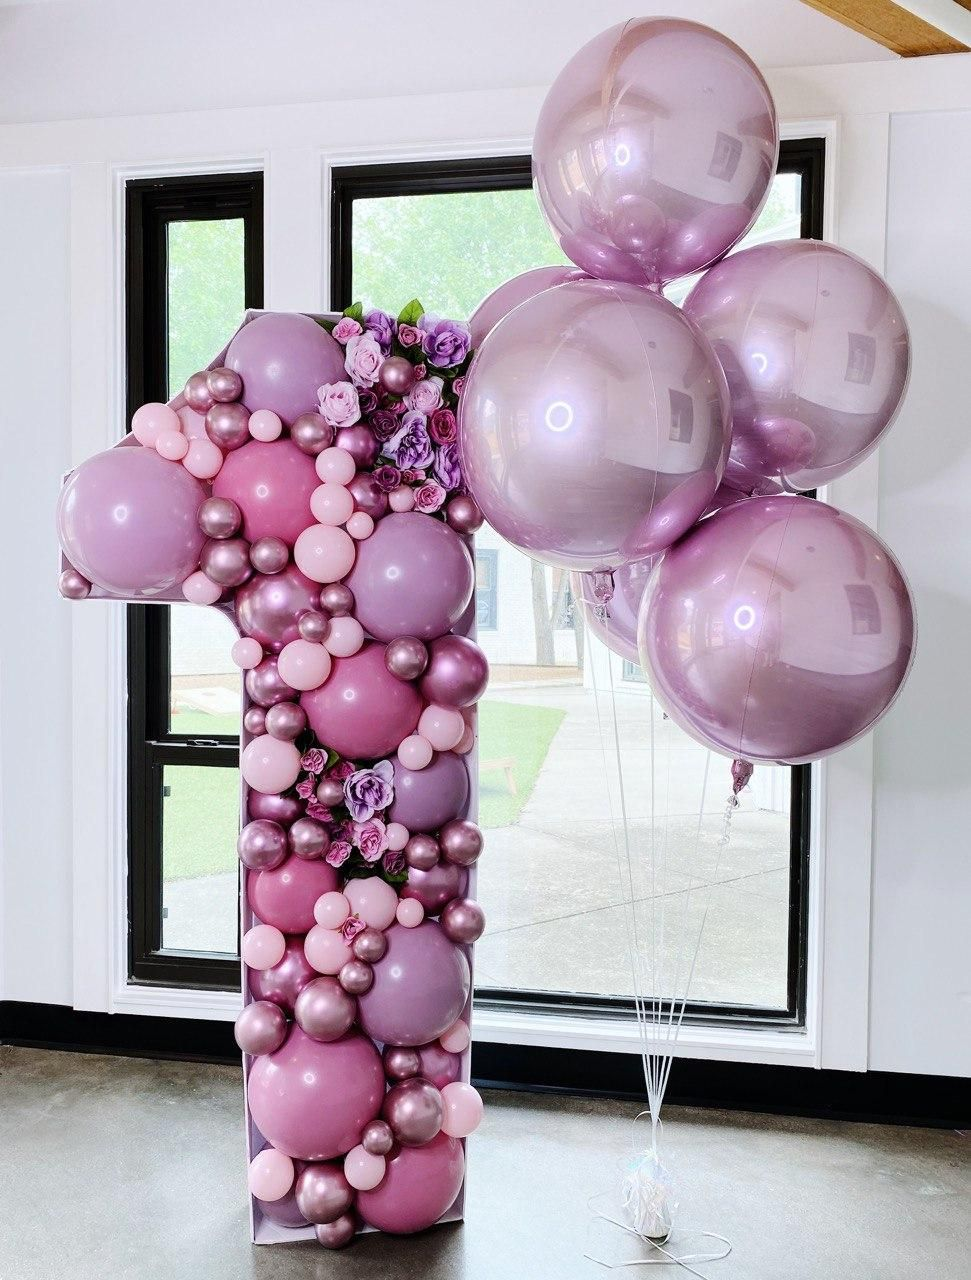 Need mosaic letter or number balloons? We offer balloons for your event. 10% off…